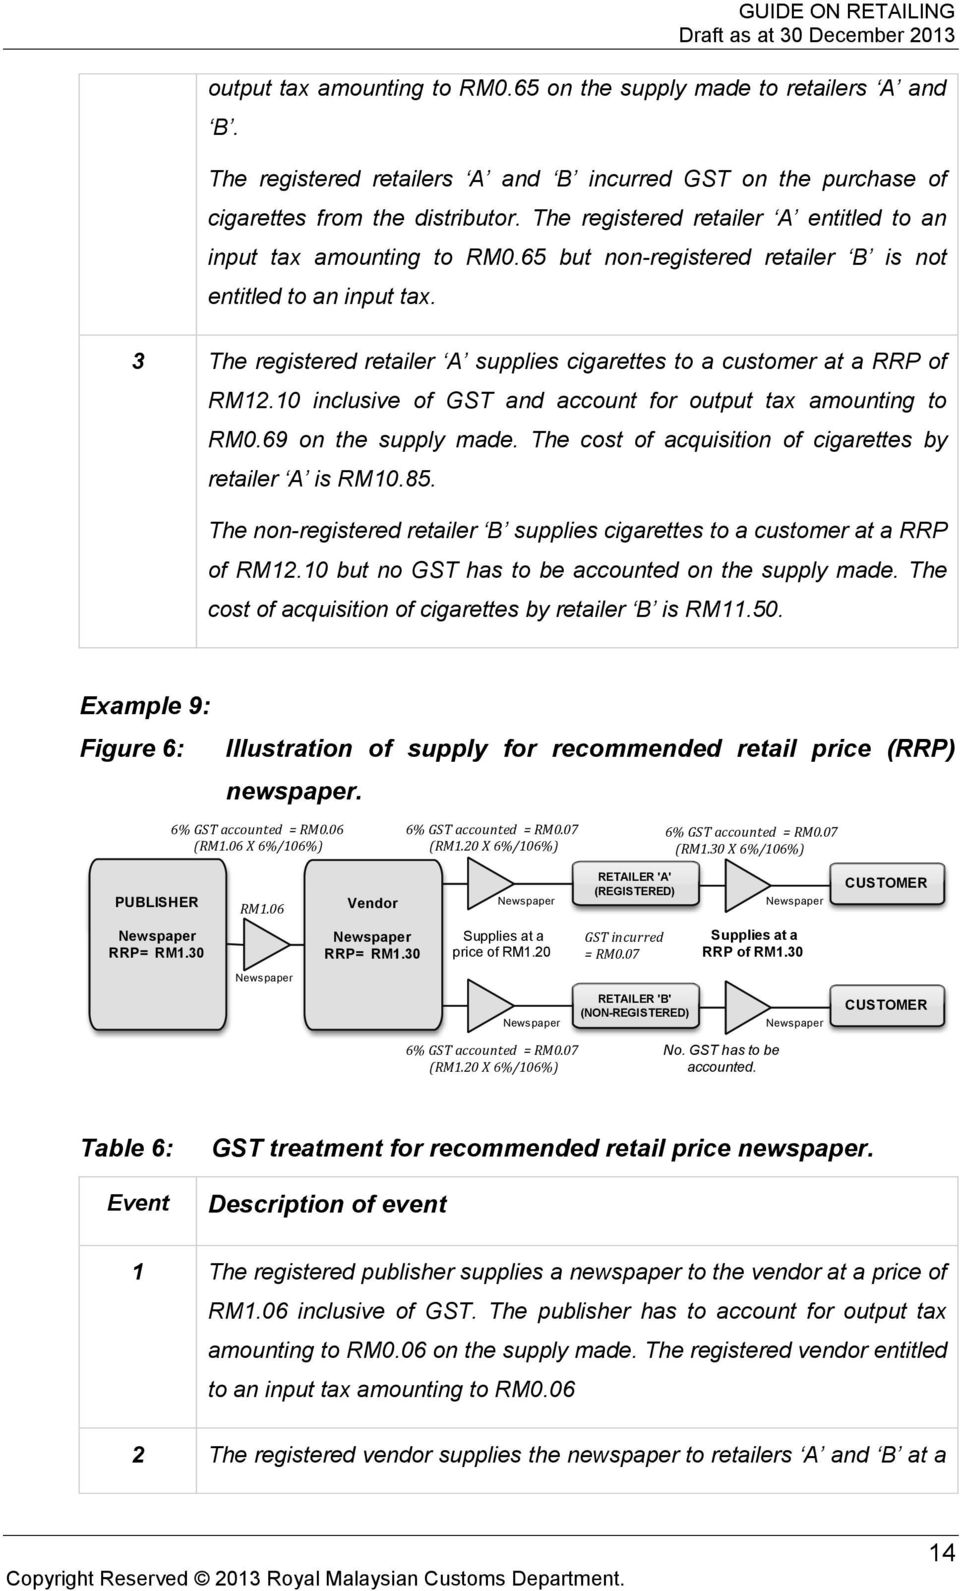 3 The registered retailer A supplies cigarettes to a customer at a RRP of RM12.10 inclusive of GST and account for output tax amounting to RM0.69 on the supply made.